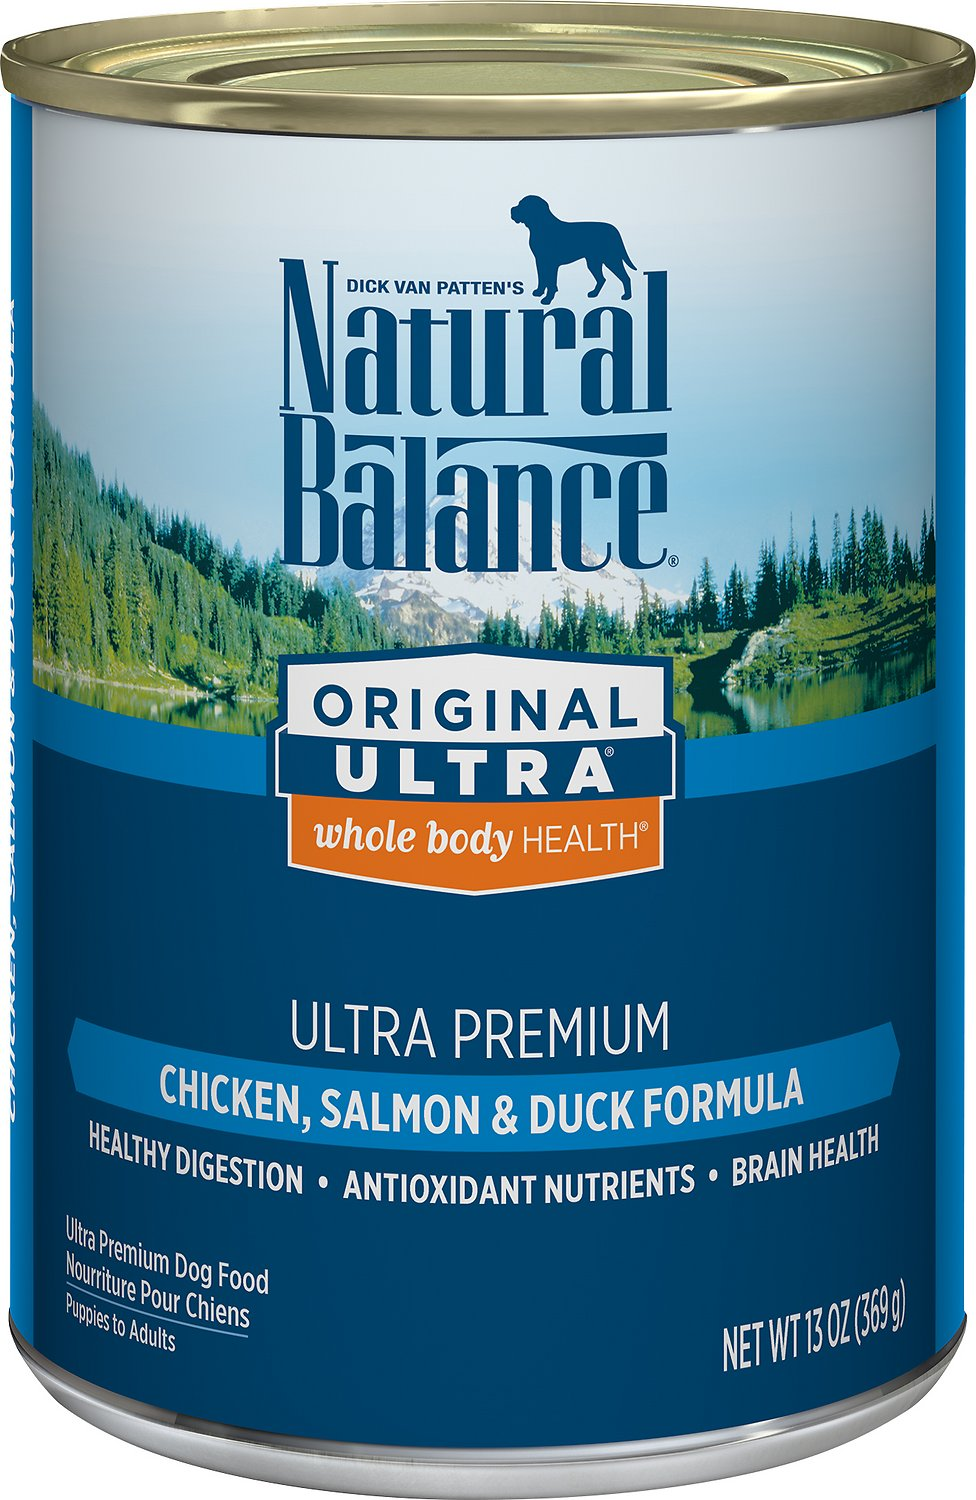 Natural Balance Original Ultra Premium Whole Body Health Chicken, Salmon & Duck Formula Canned Dog Food, 13-oz